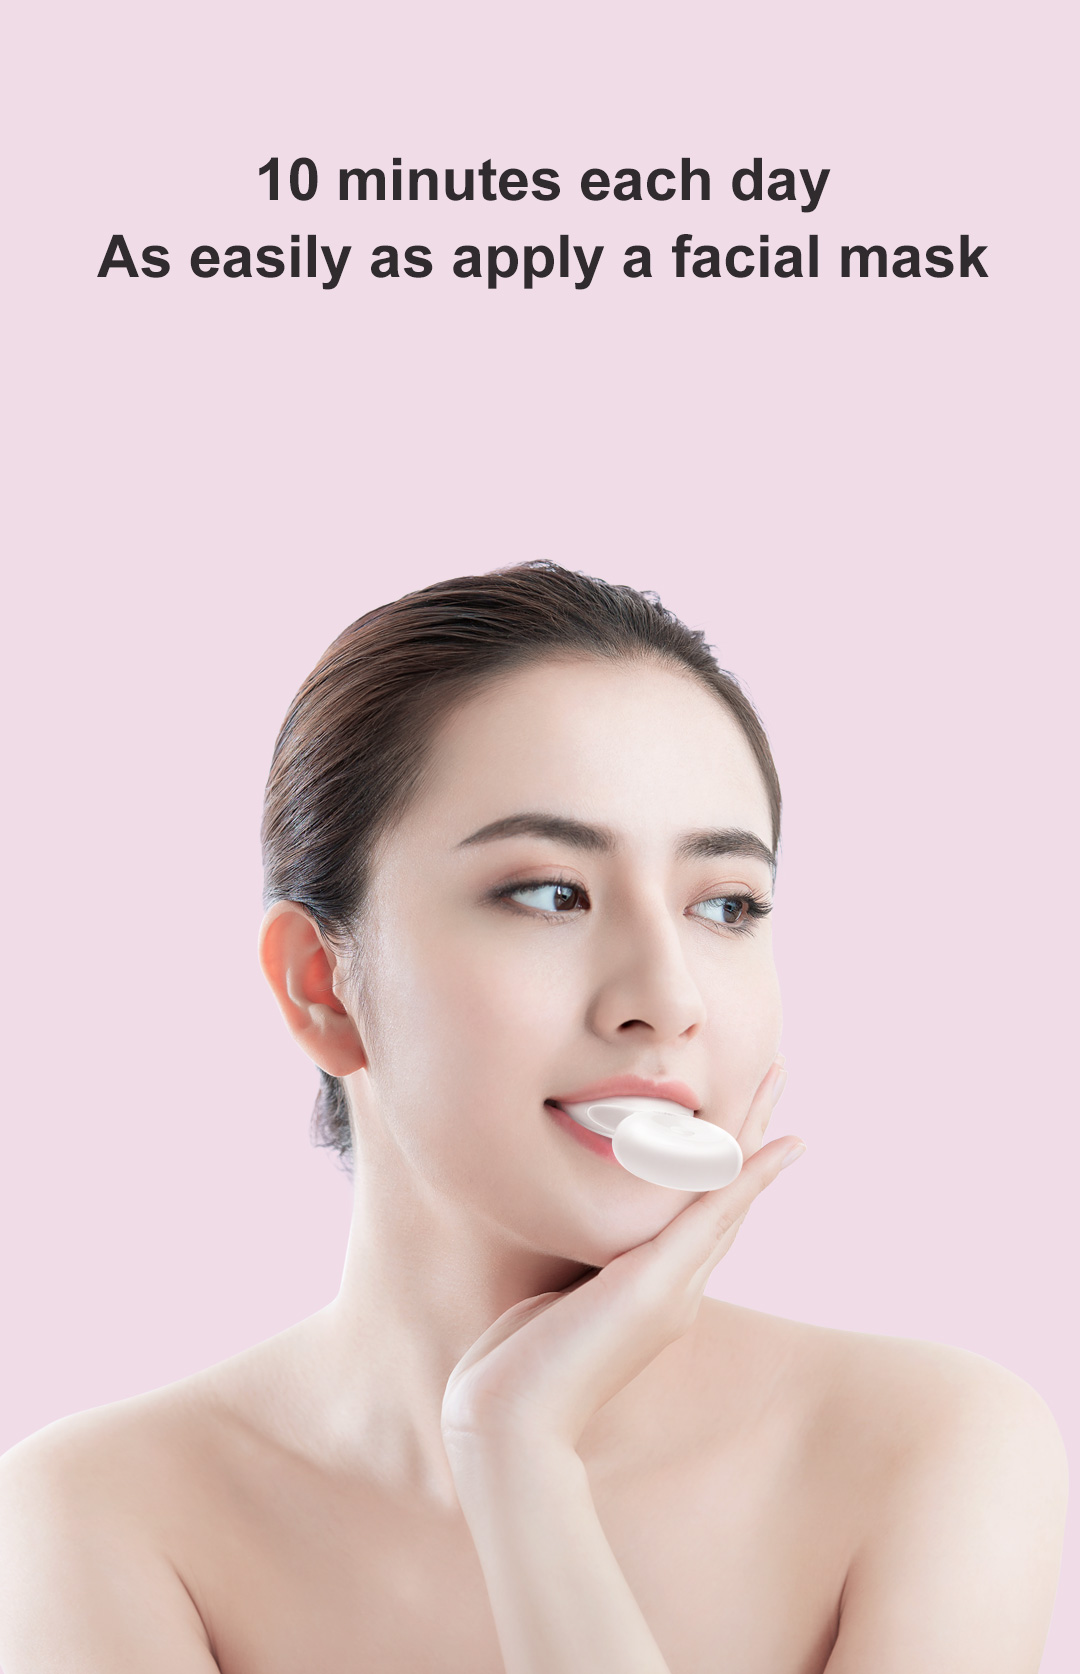 DR.BEI W7 Dental Whitening Gel, 4 Pieces Xiaomi Youpin DR.BEI W7 Dental Teeth Whitening Equipment Sonic Acoustic Oral Care Beautifier IPX7 Waterproof Tooth Whitening Cleaning Tools